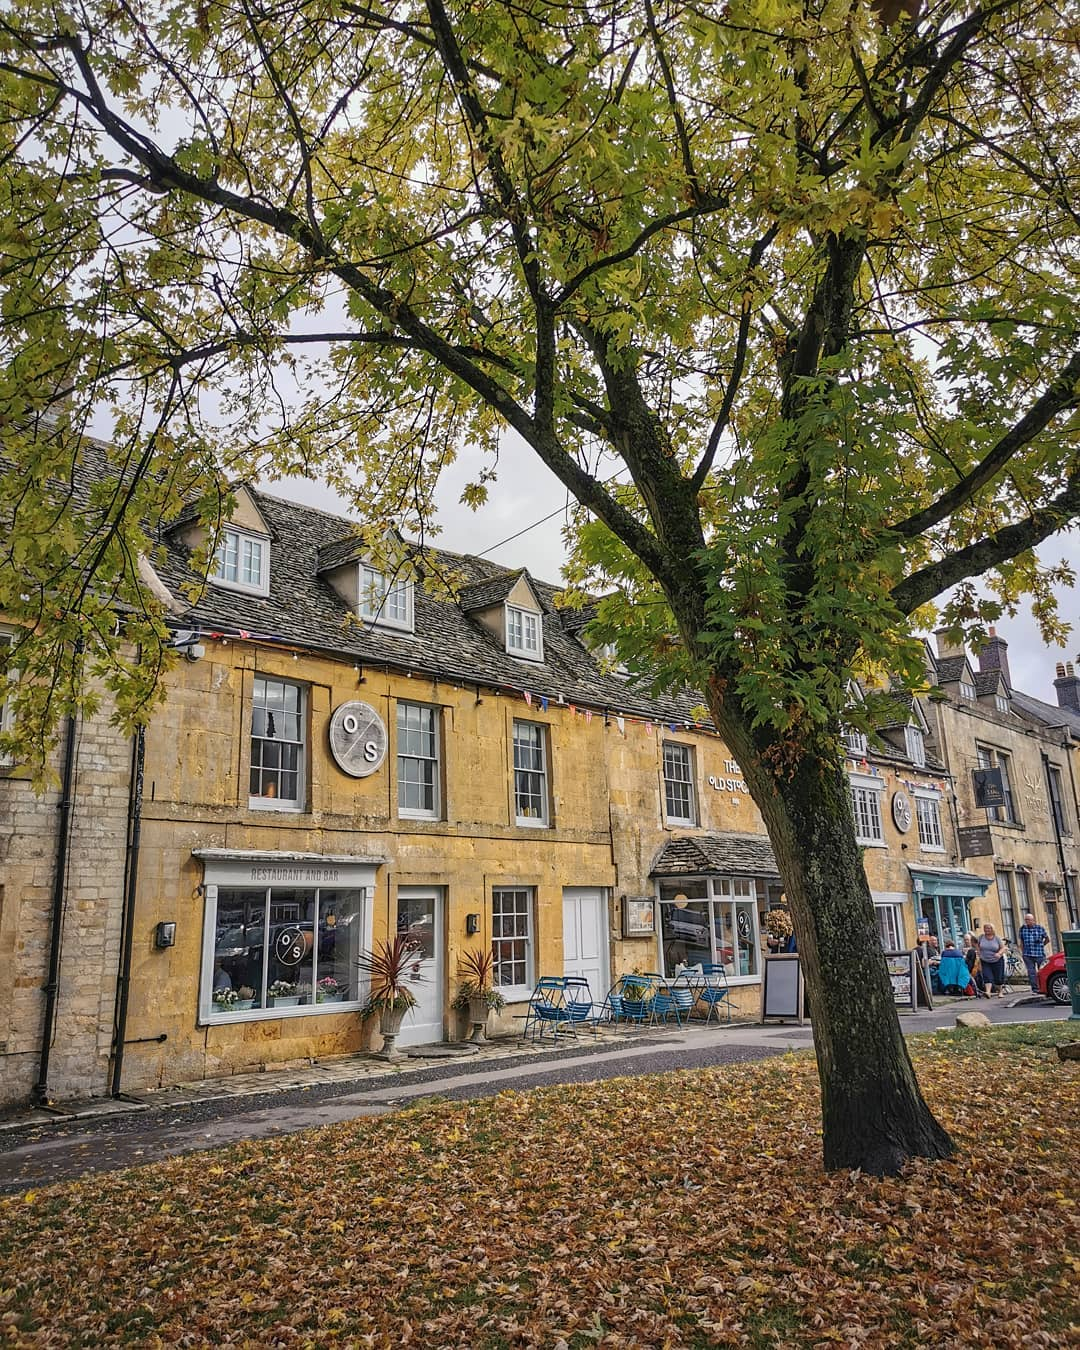 Stow On the Wold, Cotswolds, Vương quốc Anh